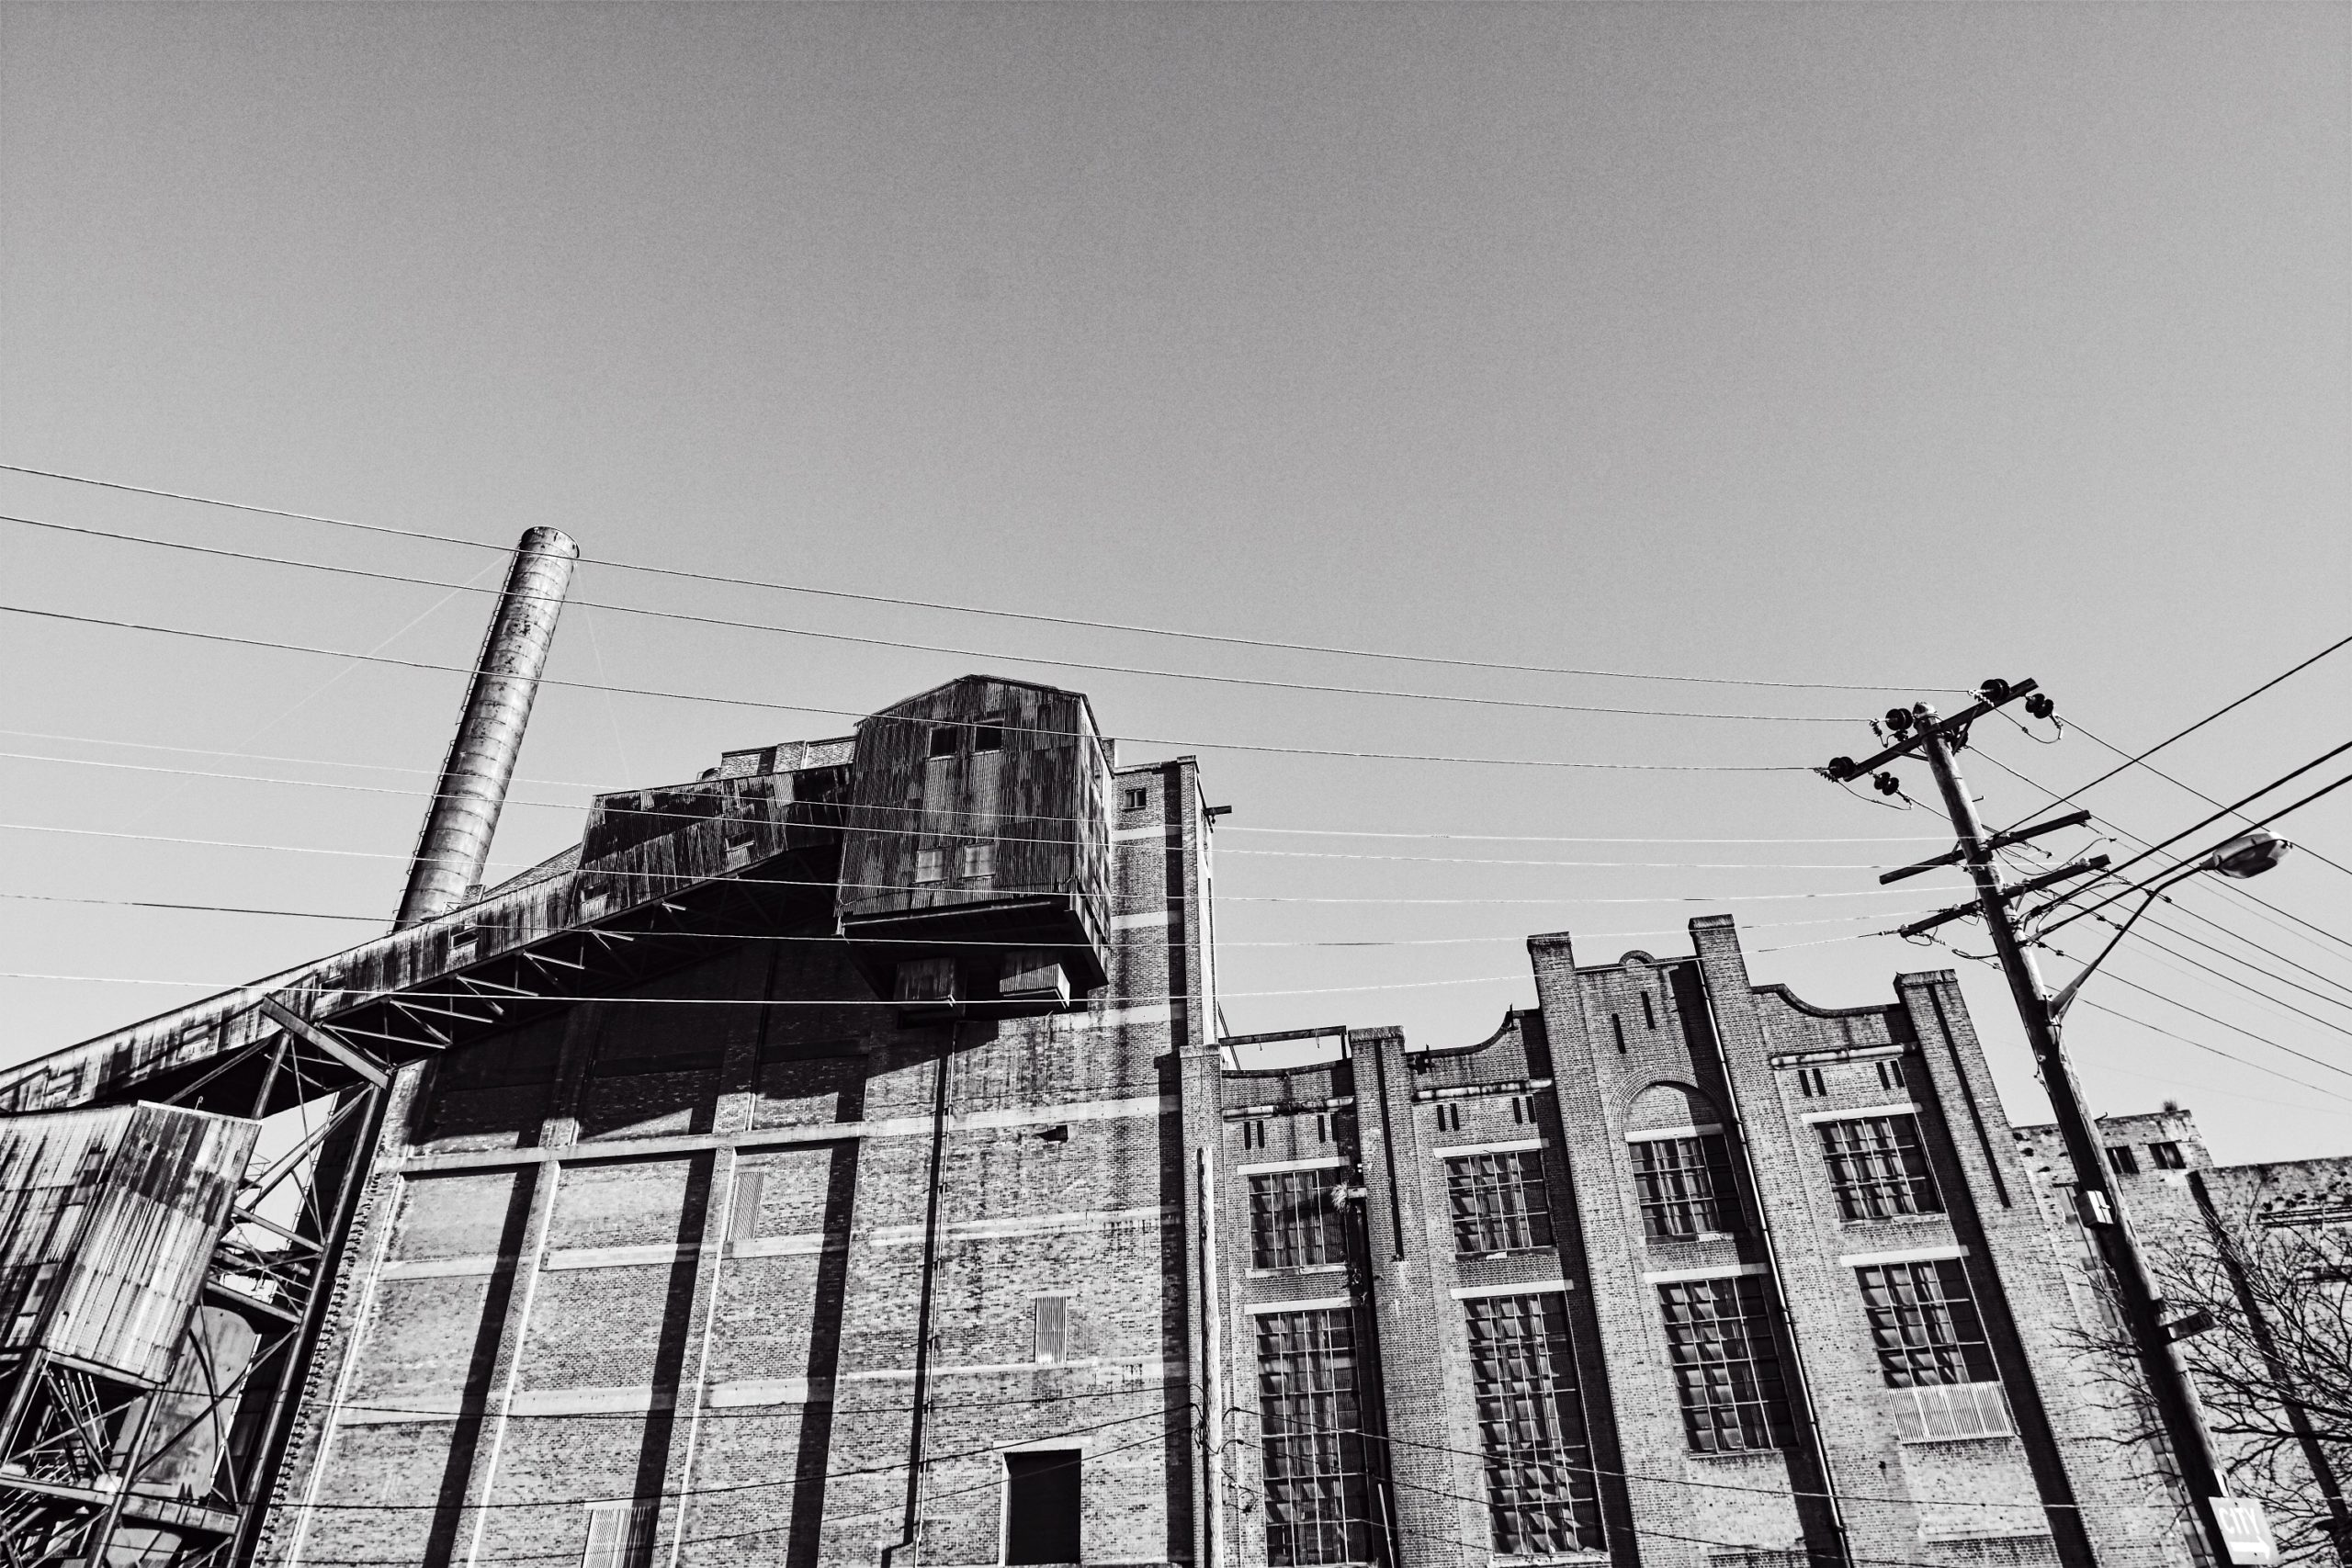 Gallery: White Bay Power Station